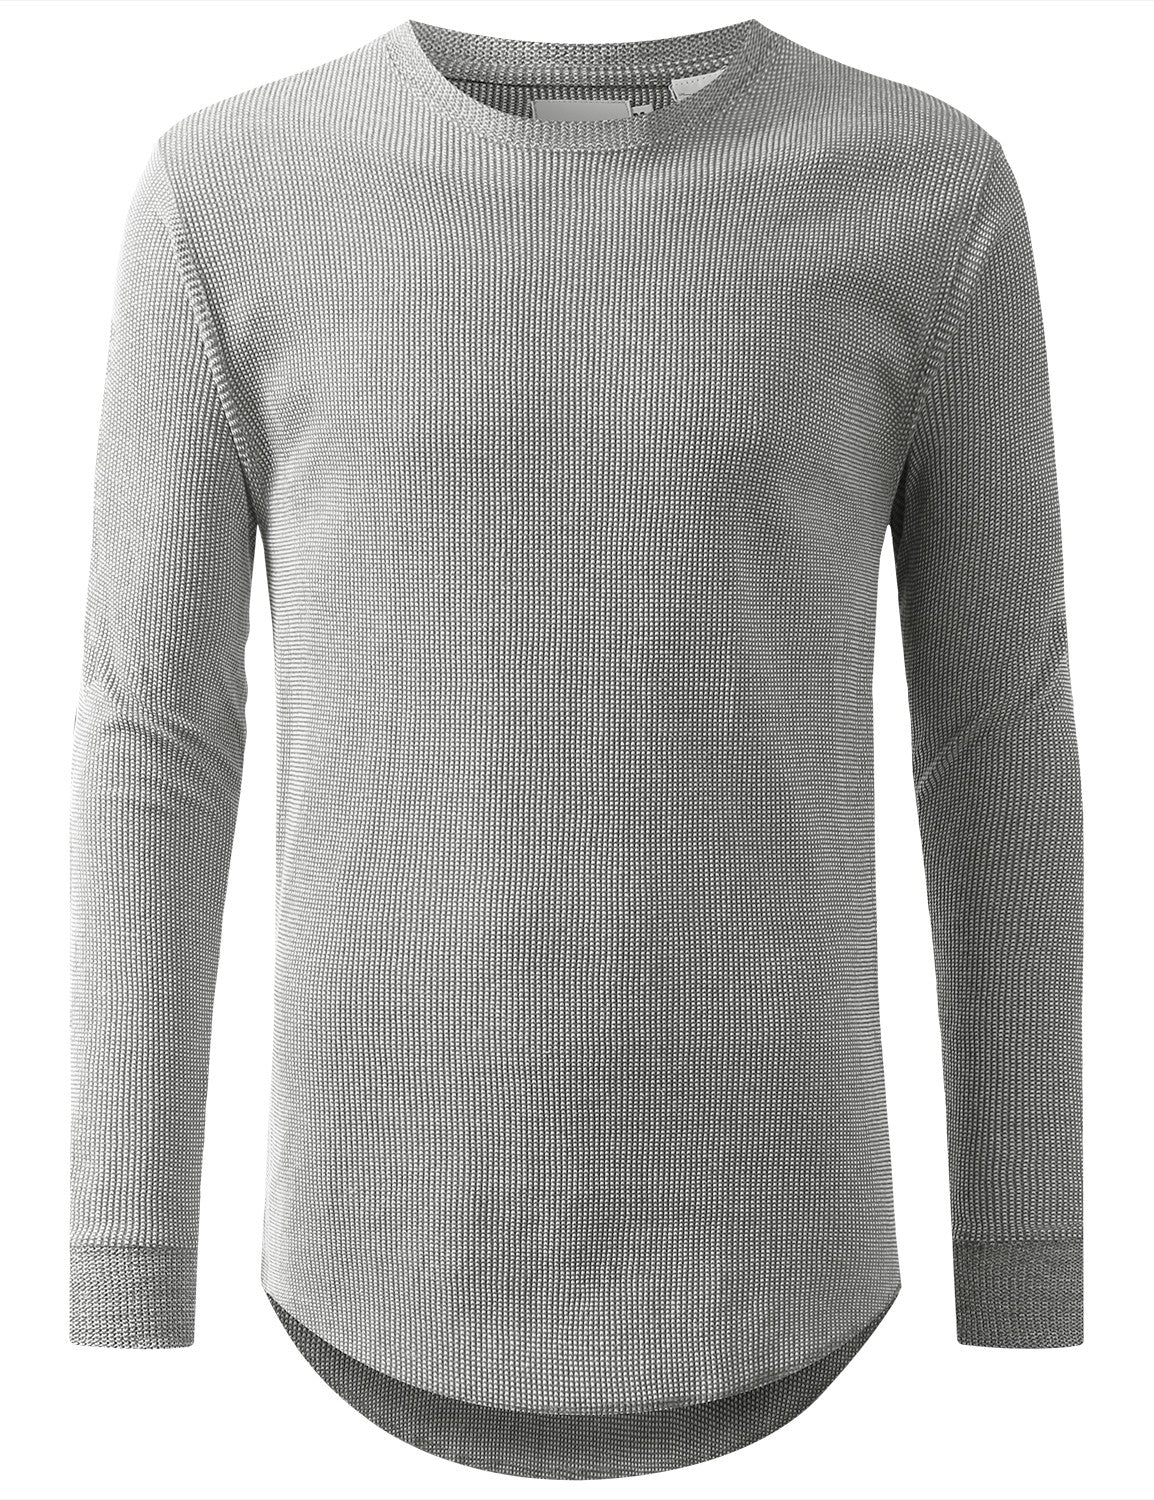 GRAY Raw Edge Thermal Long Sleeve Tshirt - URBANCREWS